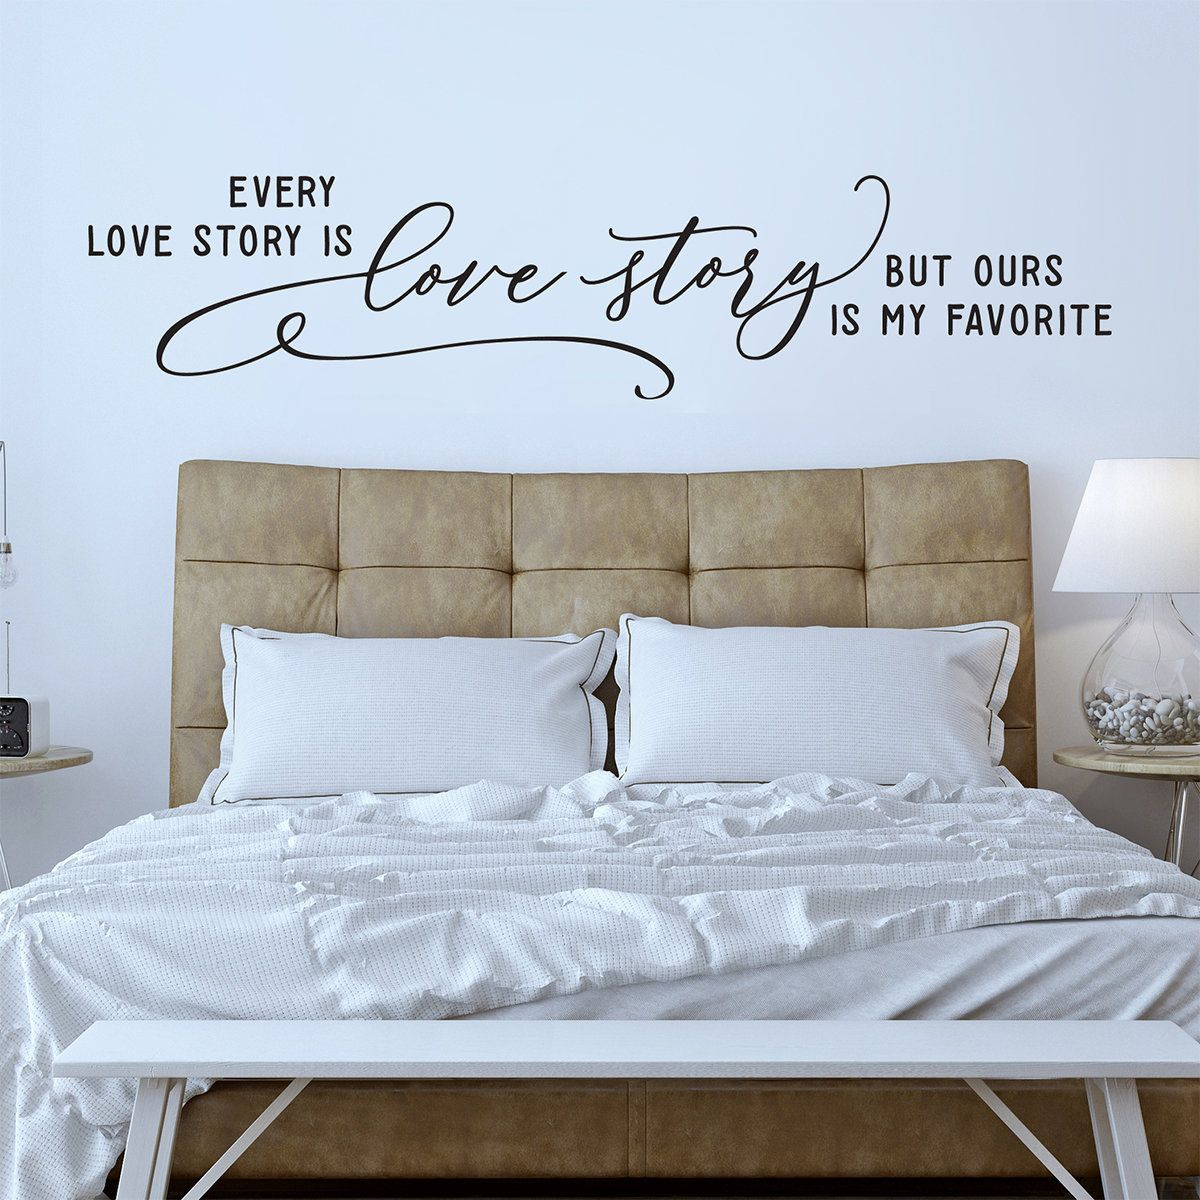 Master bedroom wall decor stickers  Every love story is beautiful but ours is my favorite  Bedroom Wall